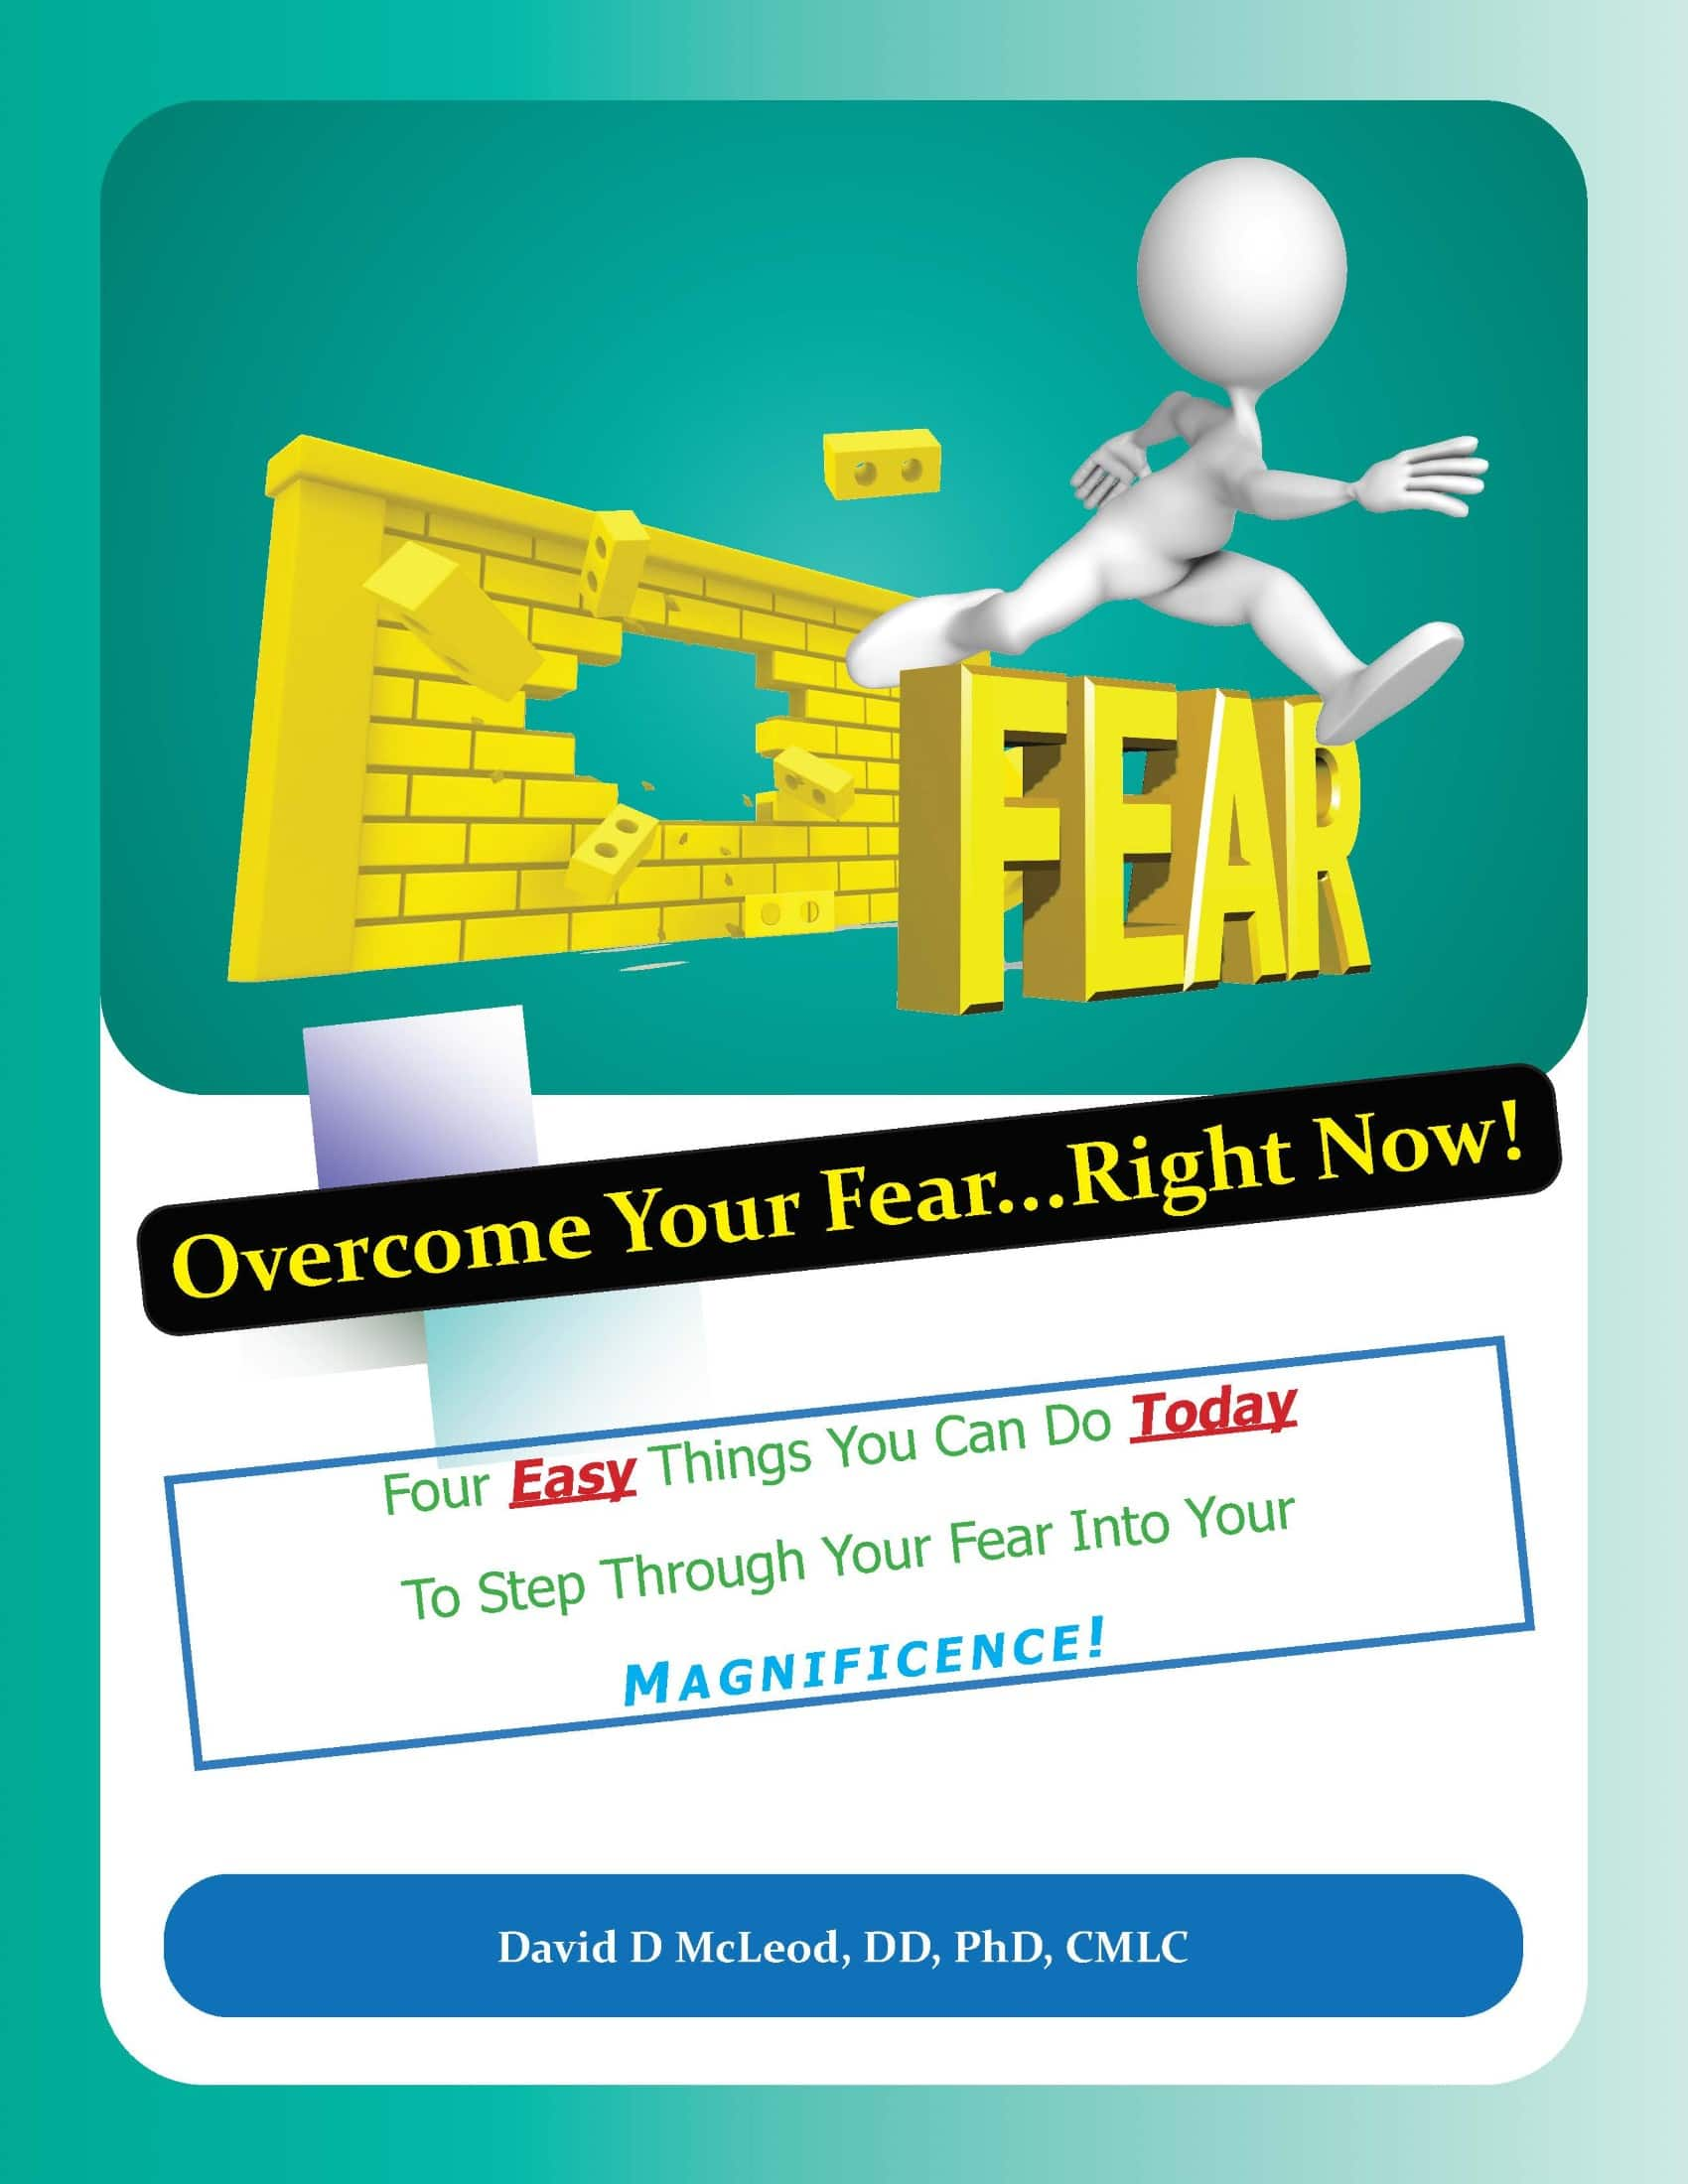 Overcome Your Fear Right Now